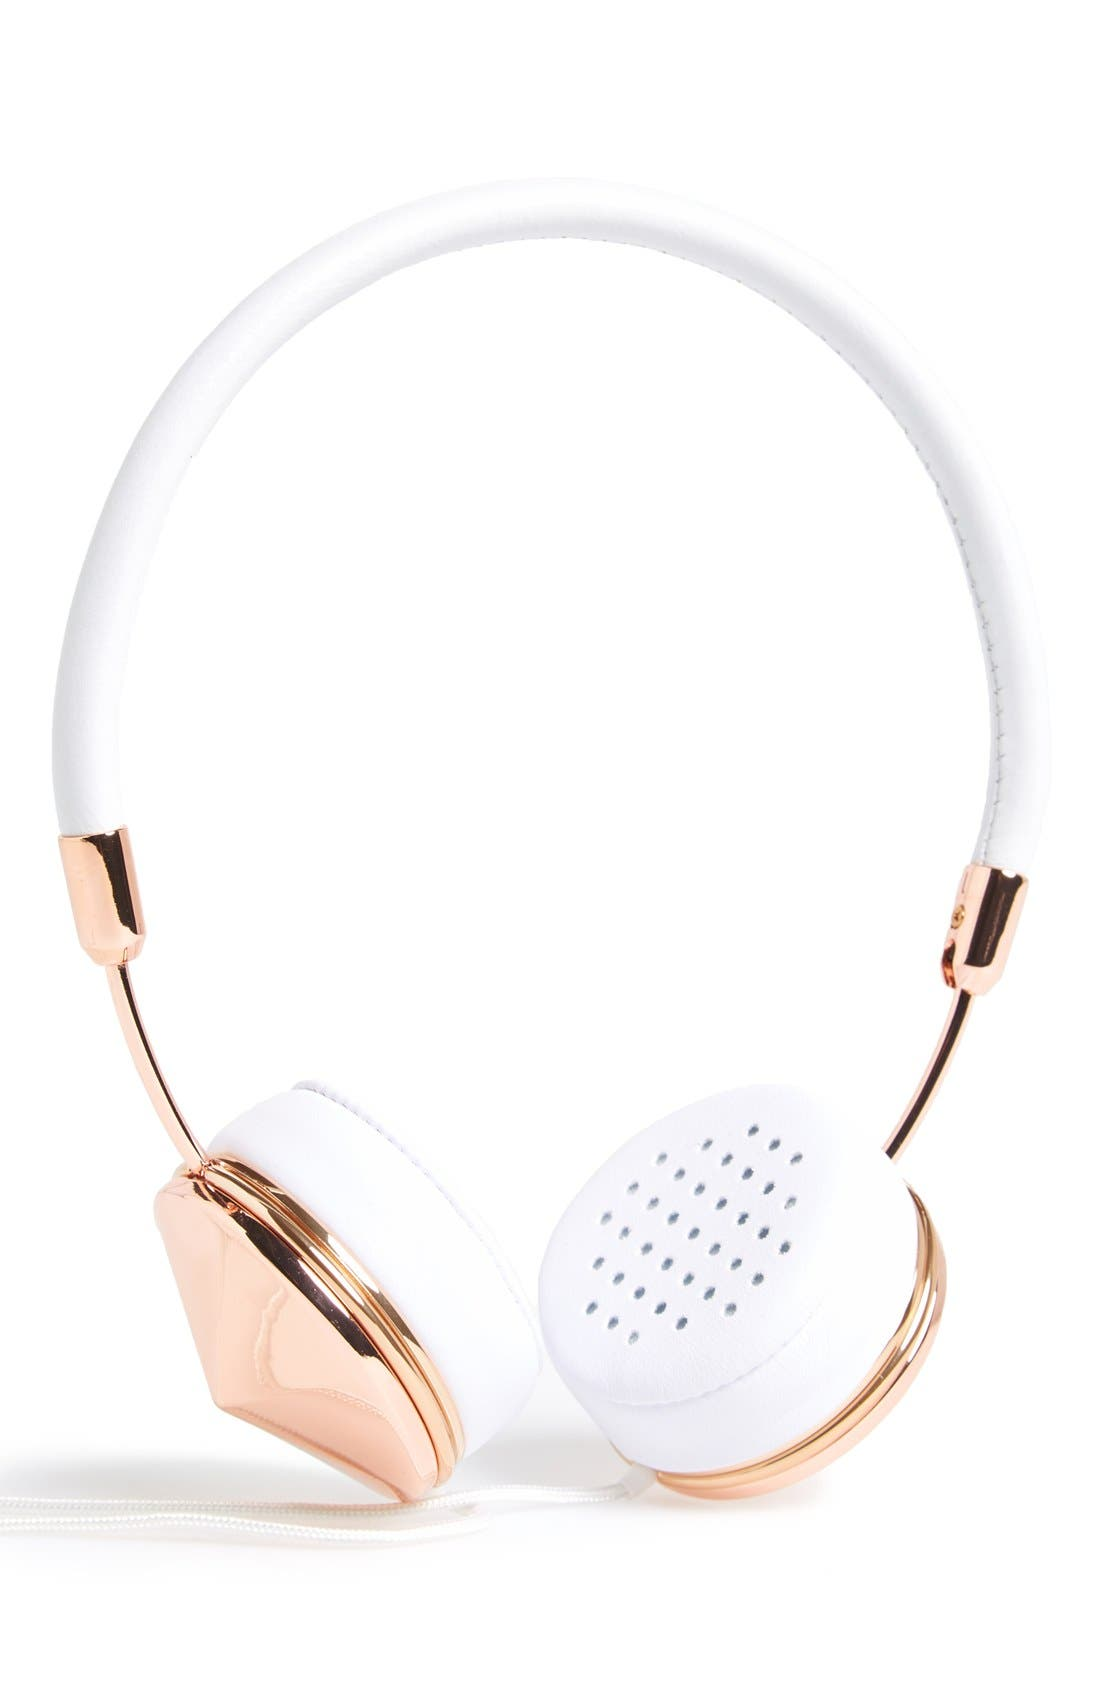 with Benefits 'Layla' Headphones,                             Main thumbnail 1, color,                             220